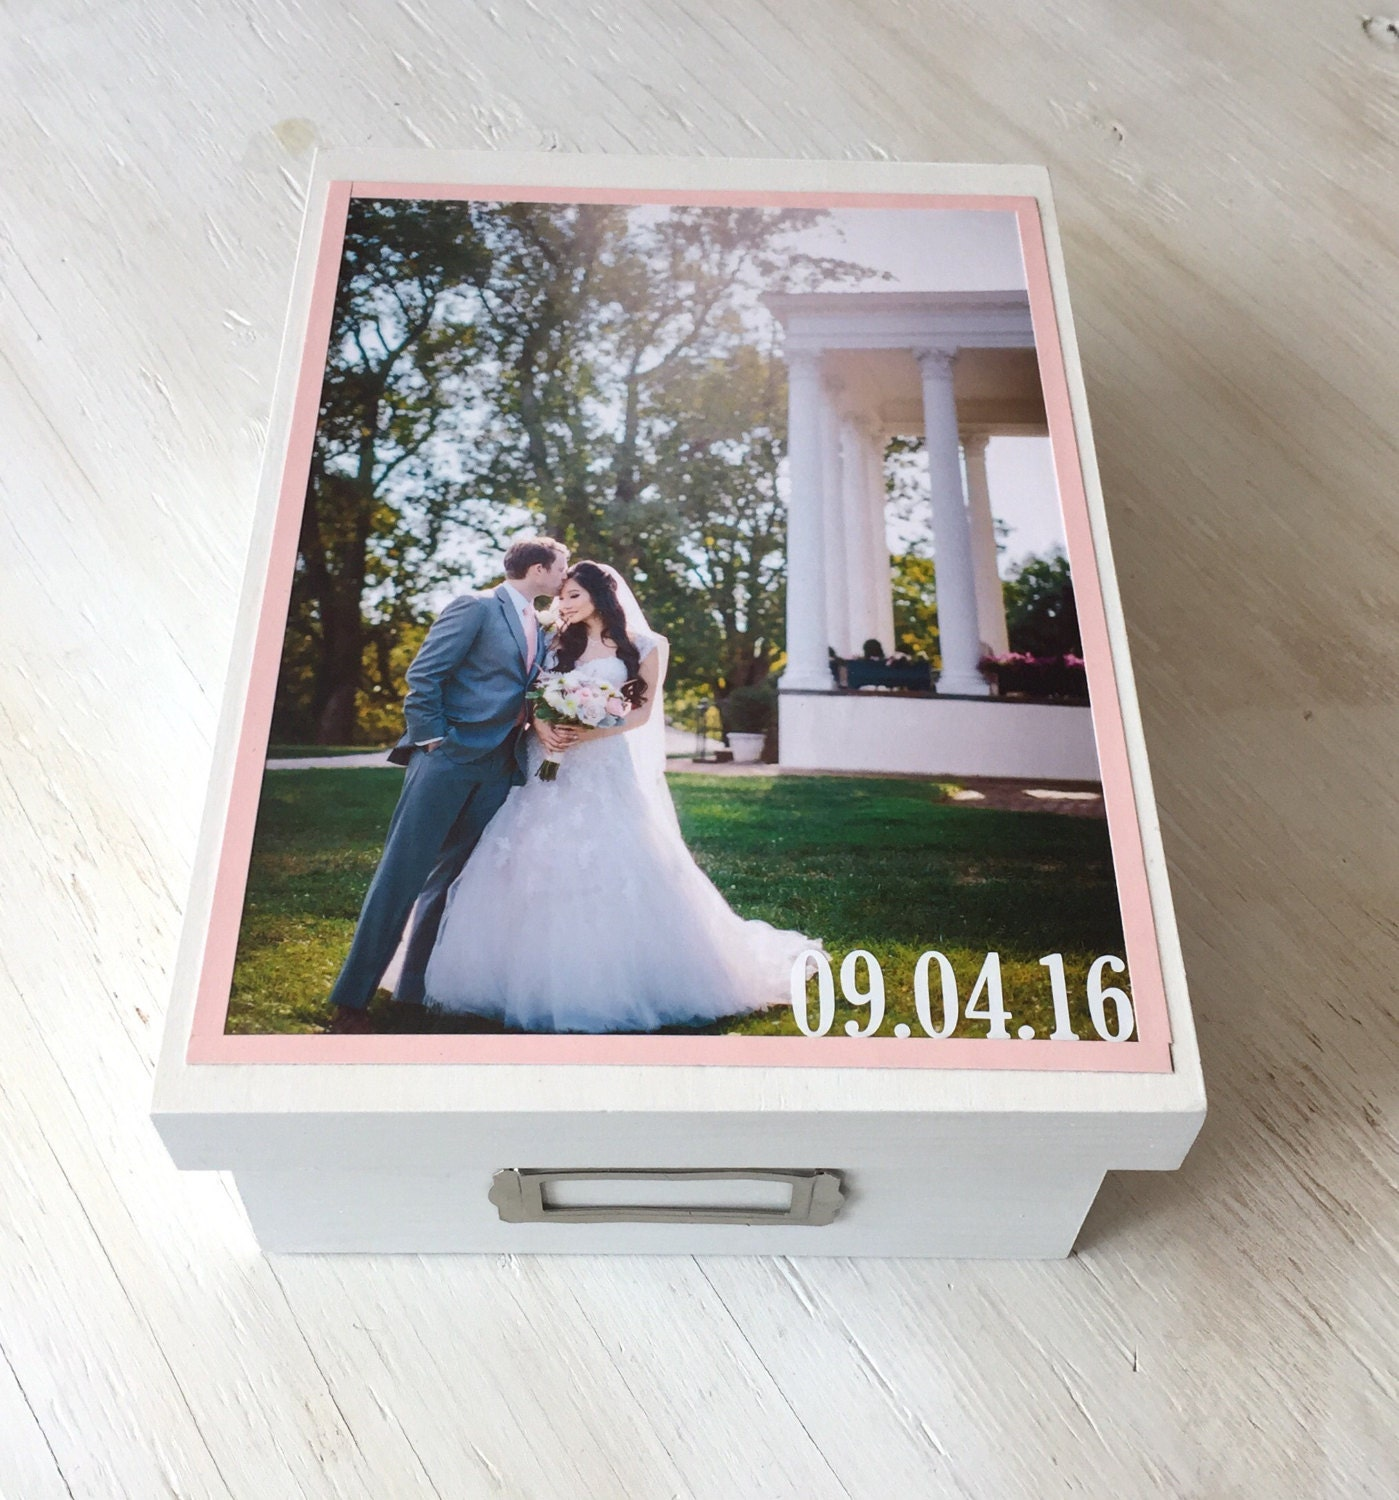 Vanity box for wedding